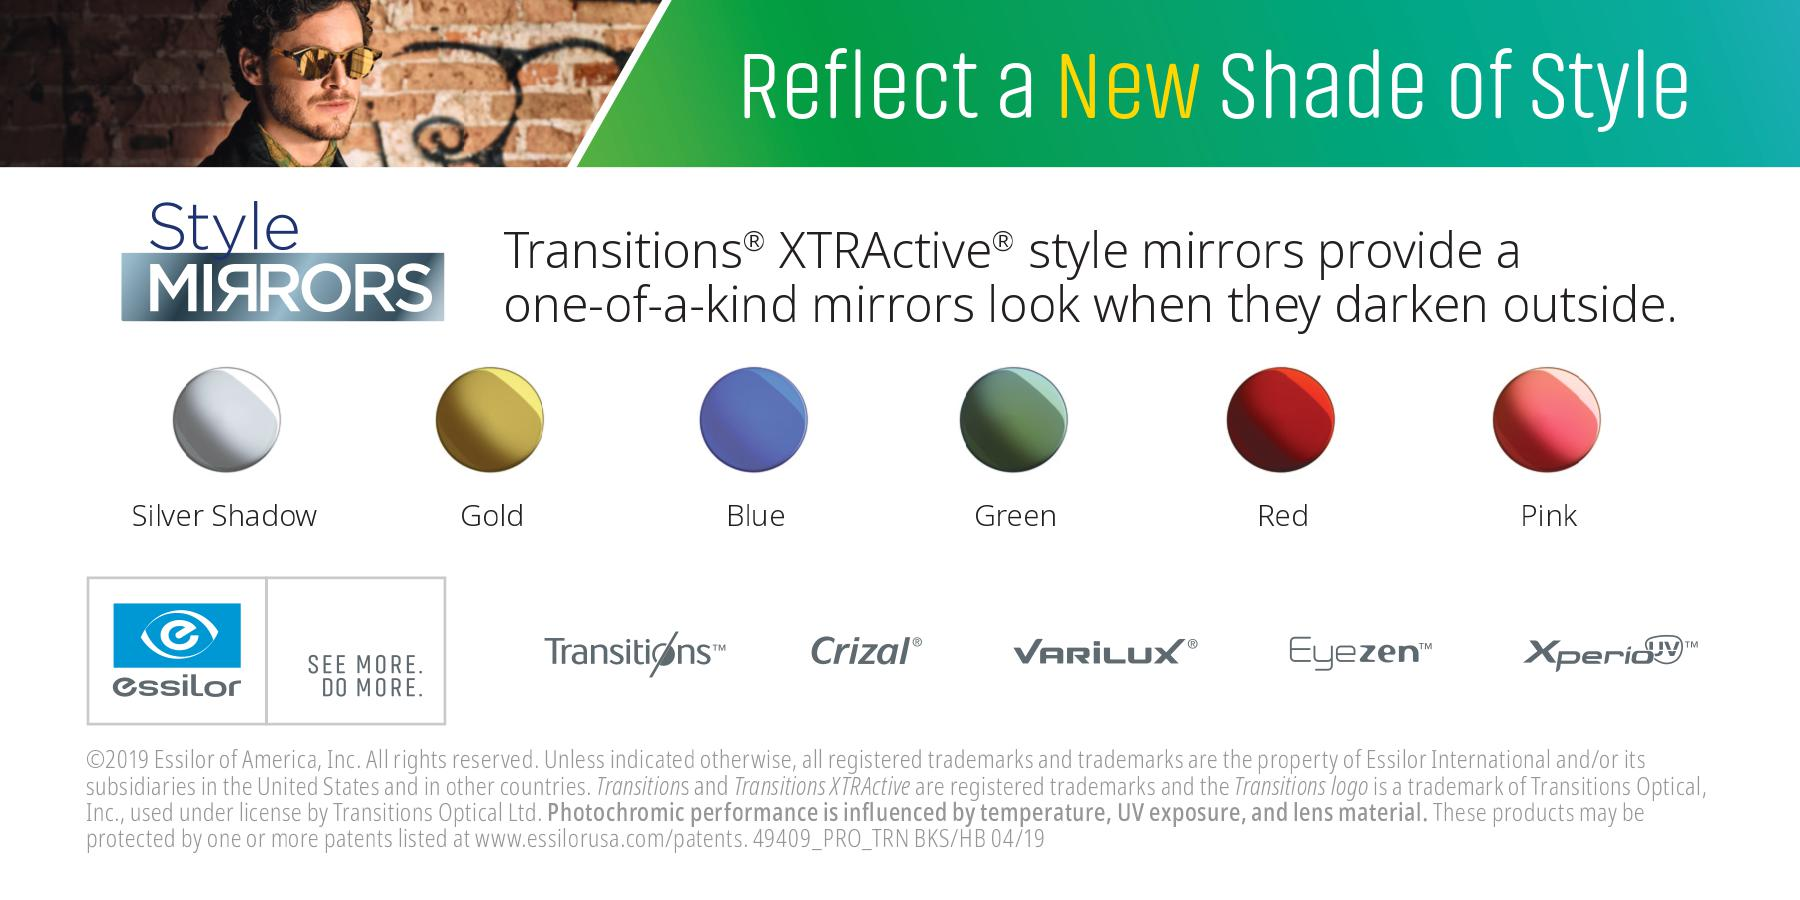 Transitions XTRActive Style Mirrors processed in-house at IcareLabs